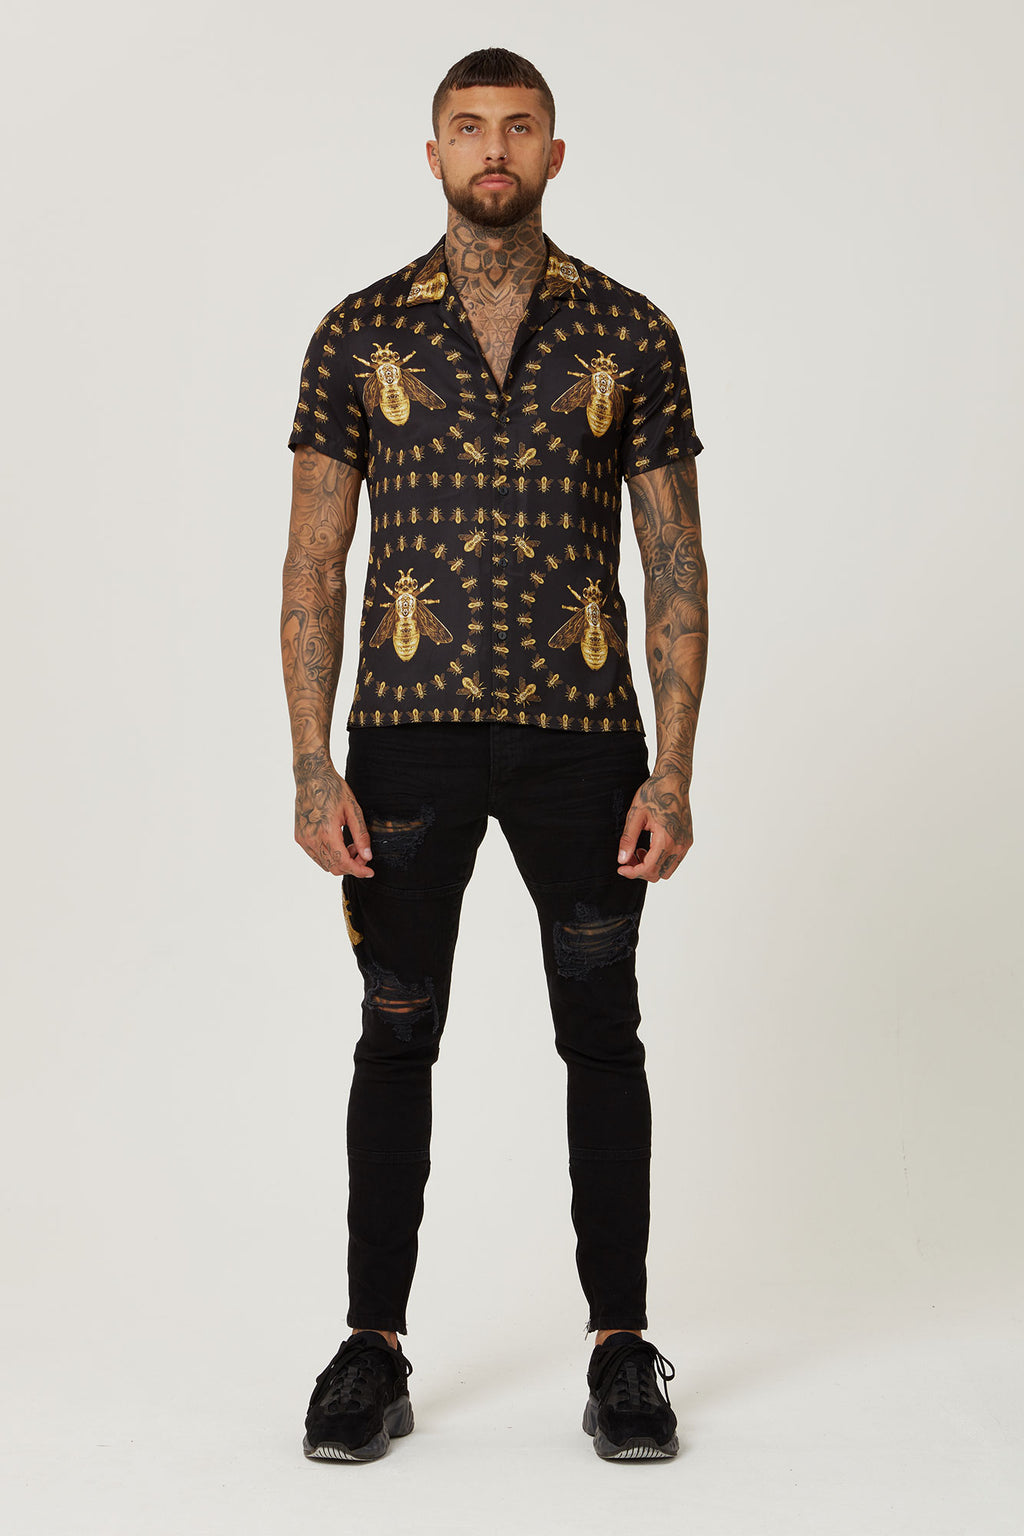 HERMANO CROCODILE BLACK GOLD CUBAN S/S SHIRT - H E R M A N O